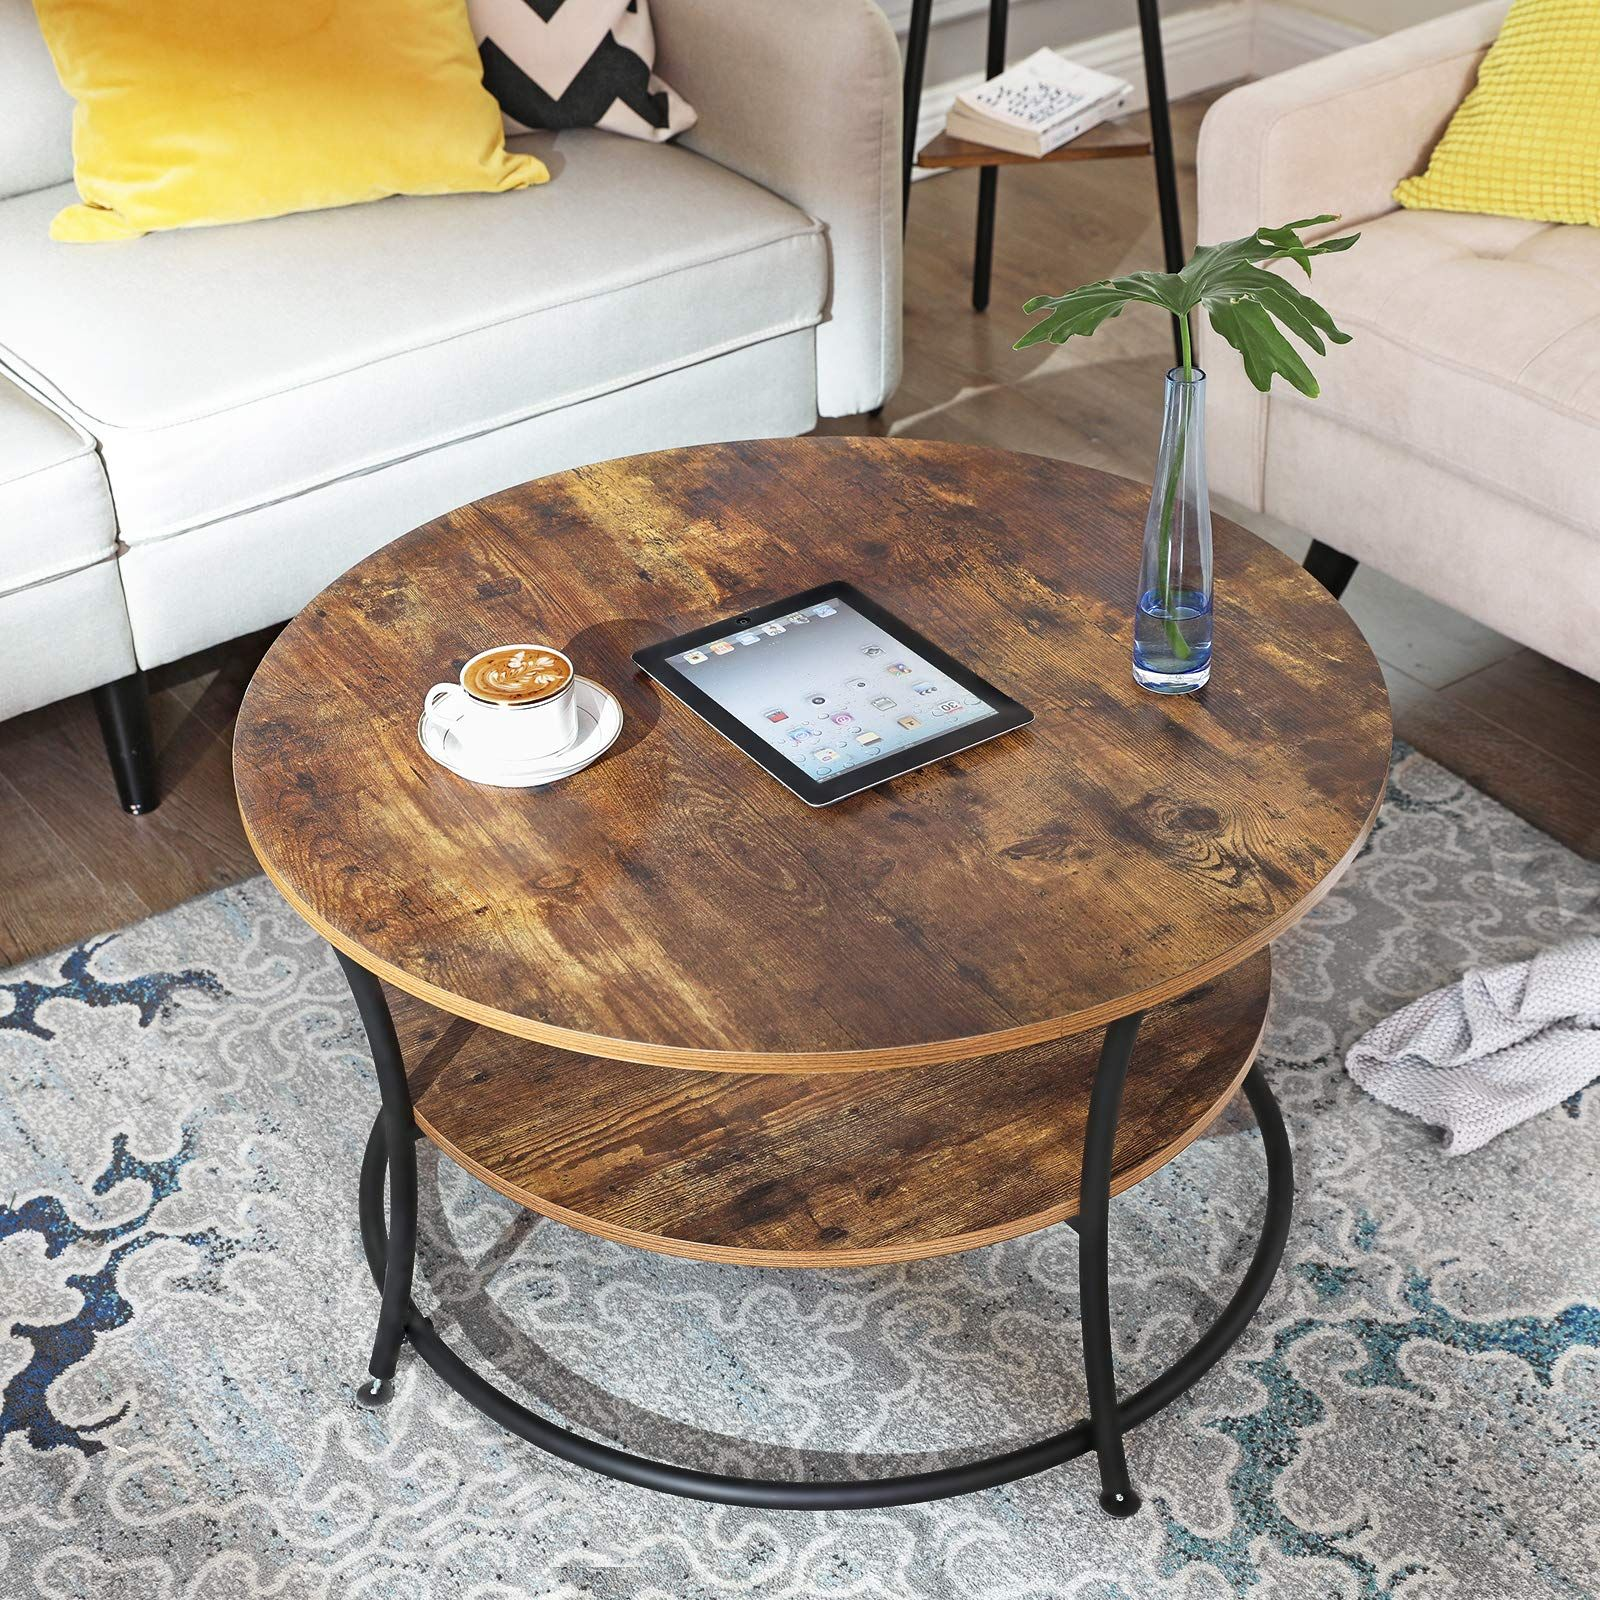 Vasagle Daintree Cocktail Assembly Industrial Circular Coffee Table Coffee Table Cool Coffee Tables [ 1600 x 1600 Pixel ]